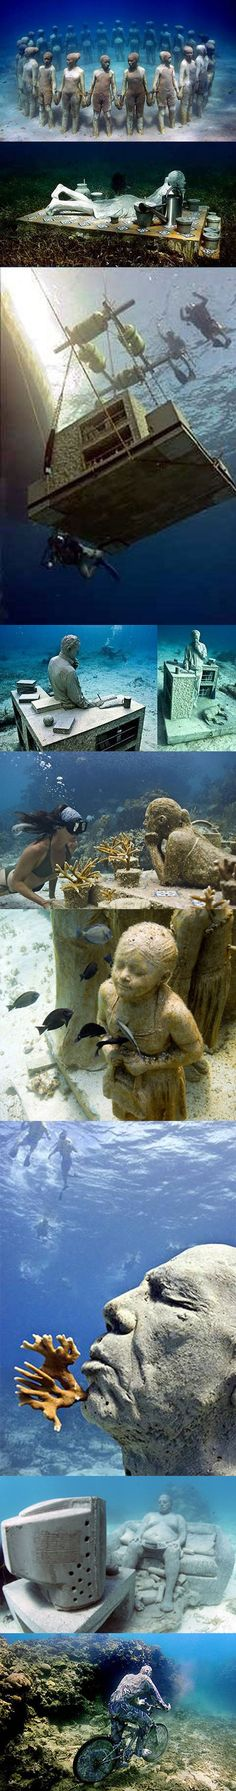 Cancun Underwater Museum is a series of sculptures by Jason deCaires Taylor placed underwater off the coast of Isla de Mujeres and Cancún, Mexico. The project began in November 2009 with placement of a hundred statues in shallow waters of the Cancún National Marine Park, which had been previously damaged by storms.